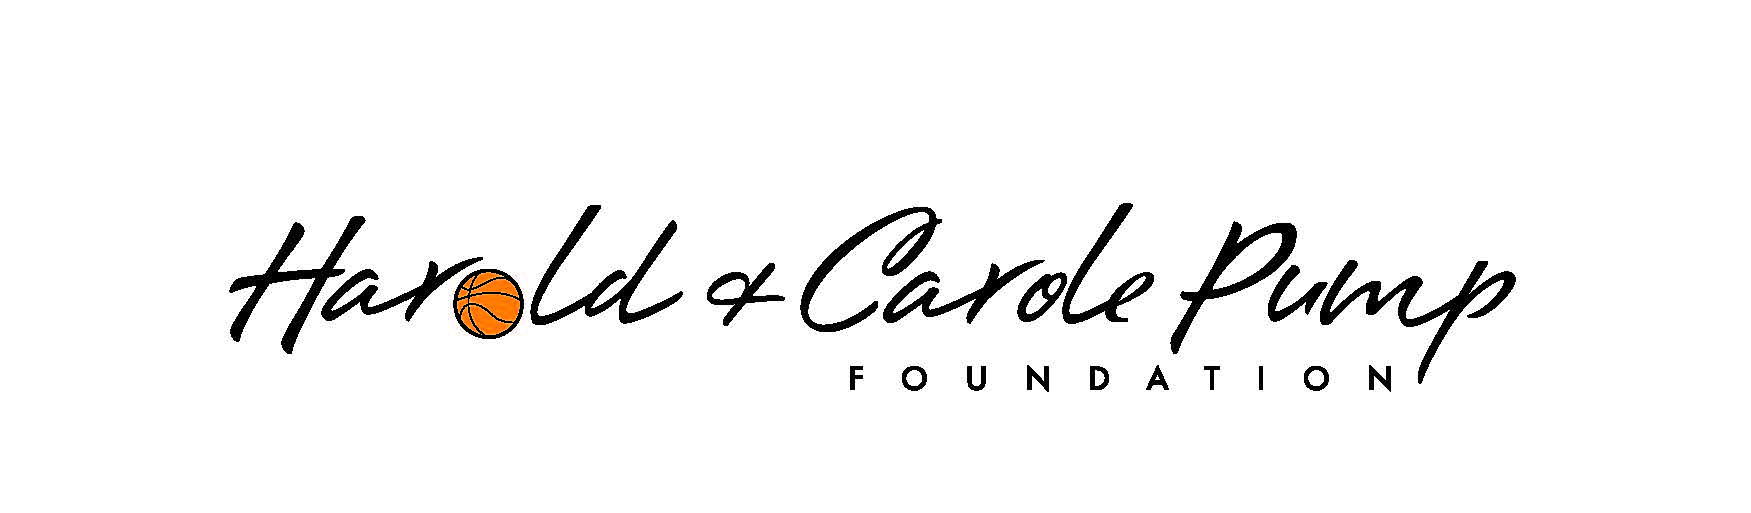 Harold and Carole Pump Foundation